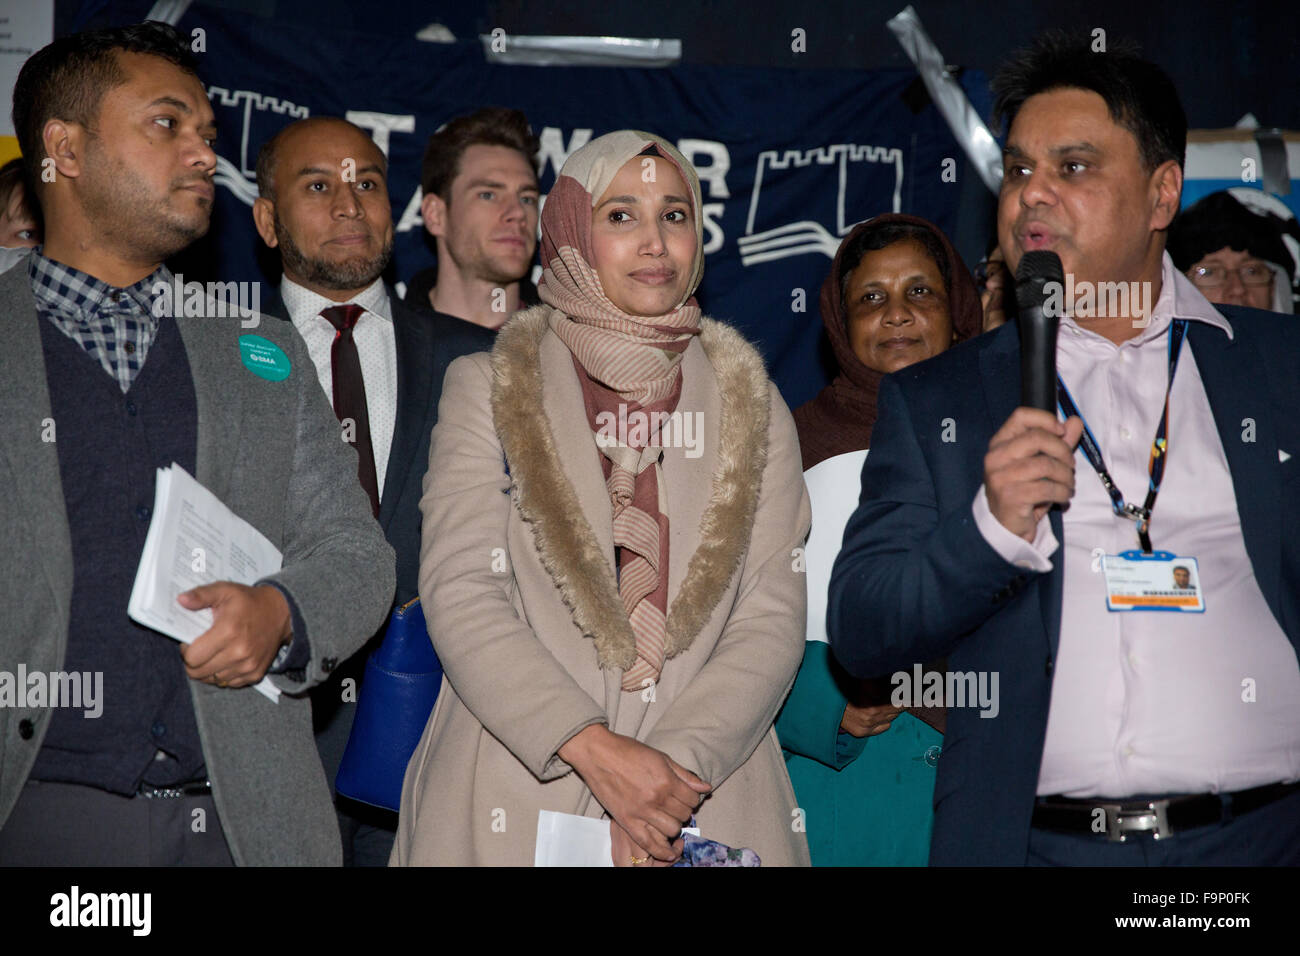 London, UK. 17th December, 2015. Shafi Ahmed, council member of the Royal College of Surgeons, addresses the Christmas - Stock Image